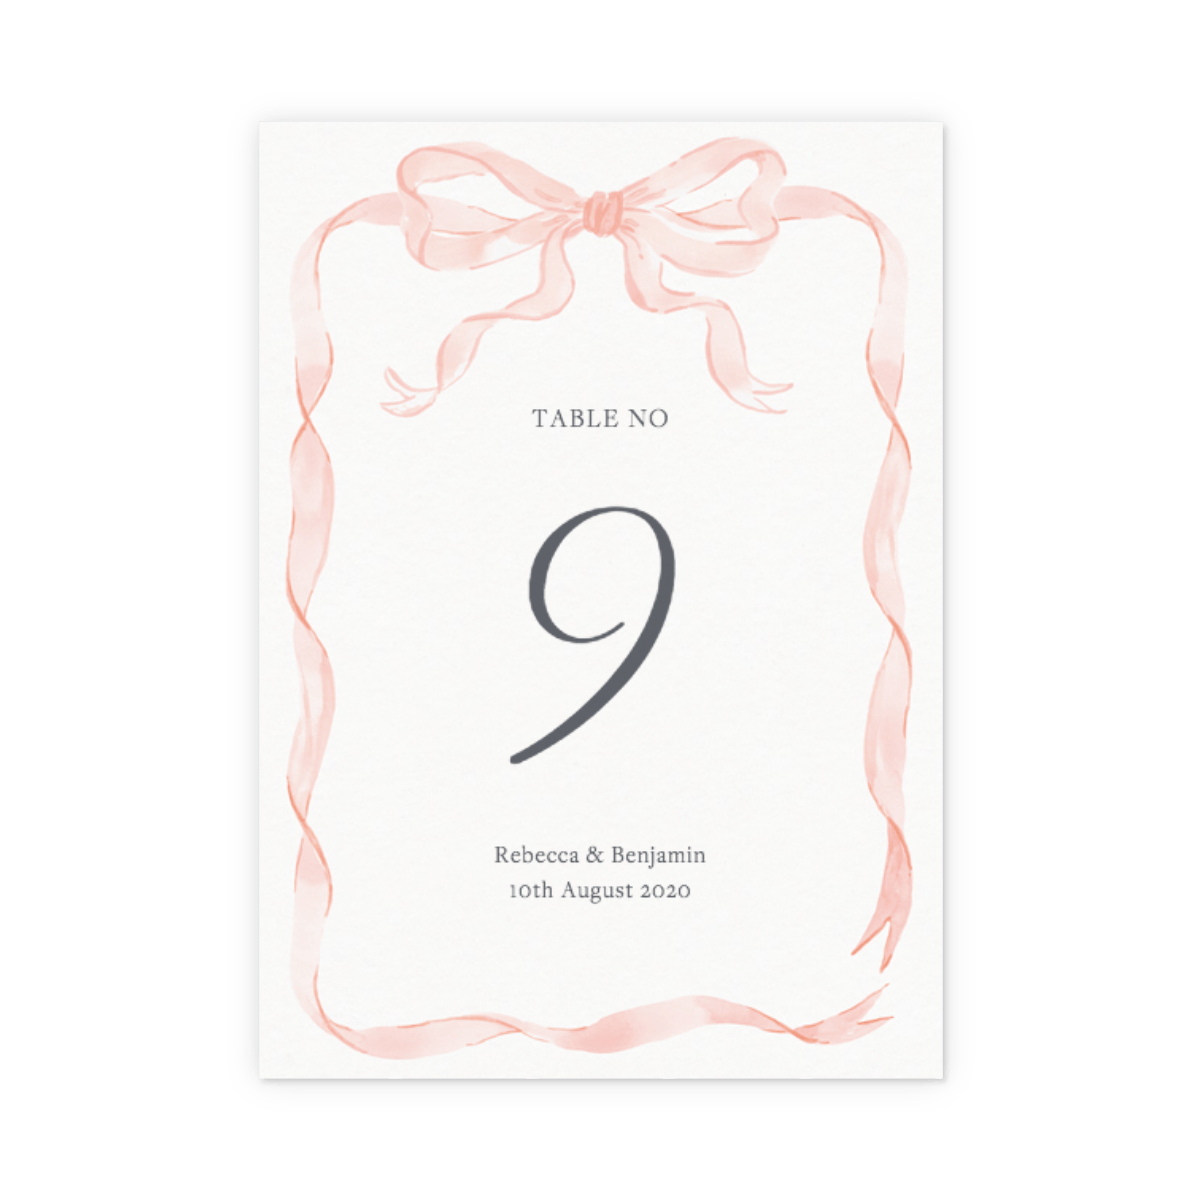 Https%3a%2f%2fwww.papier.com%2fproduct image%2f101544%2f4%2fblush ribbon 26037 front back 1579173148.png?ixlib=rb 1.1